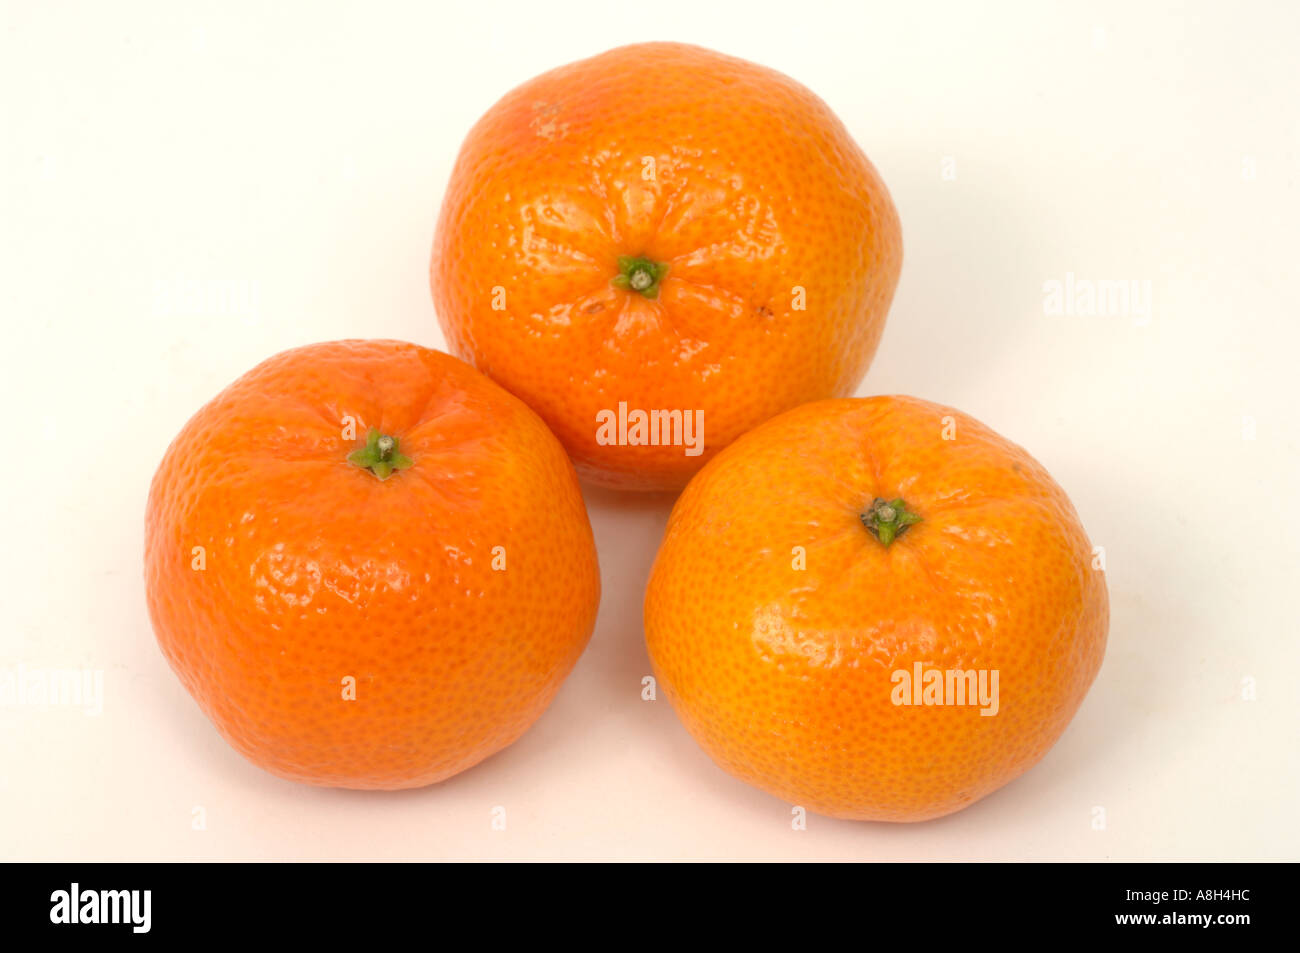 Clementines supermarket bought and in normal shop condition - Stock Image